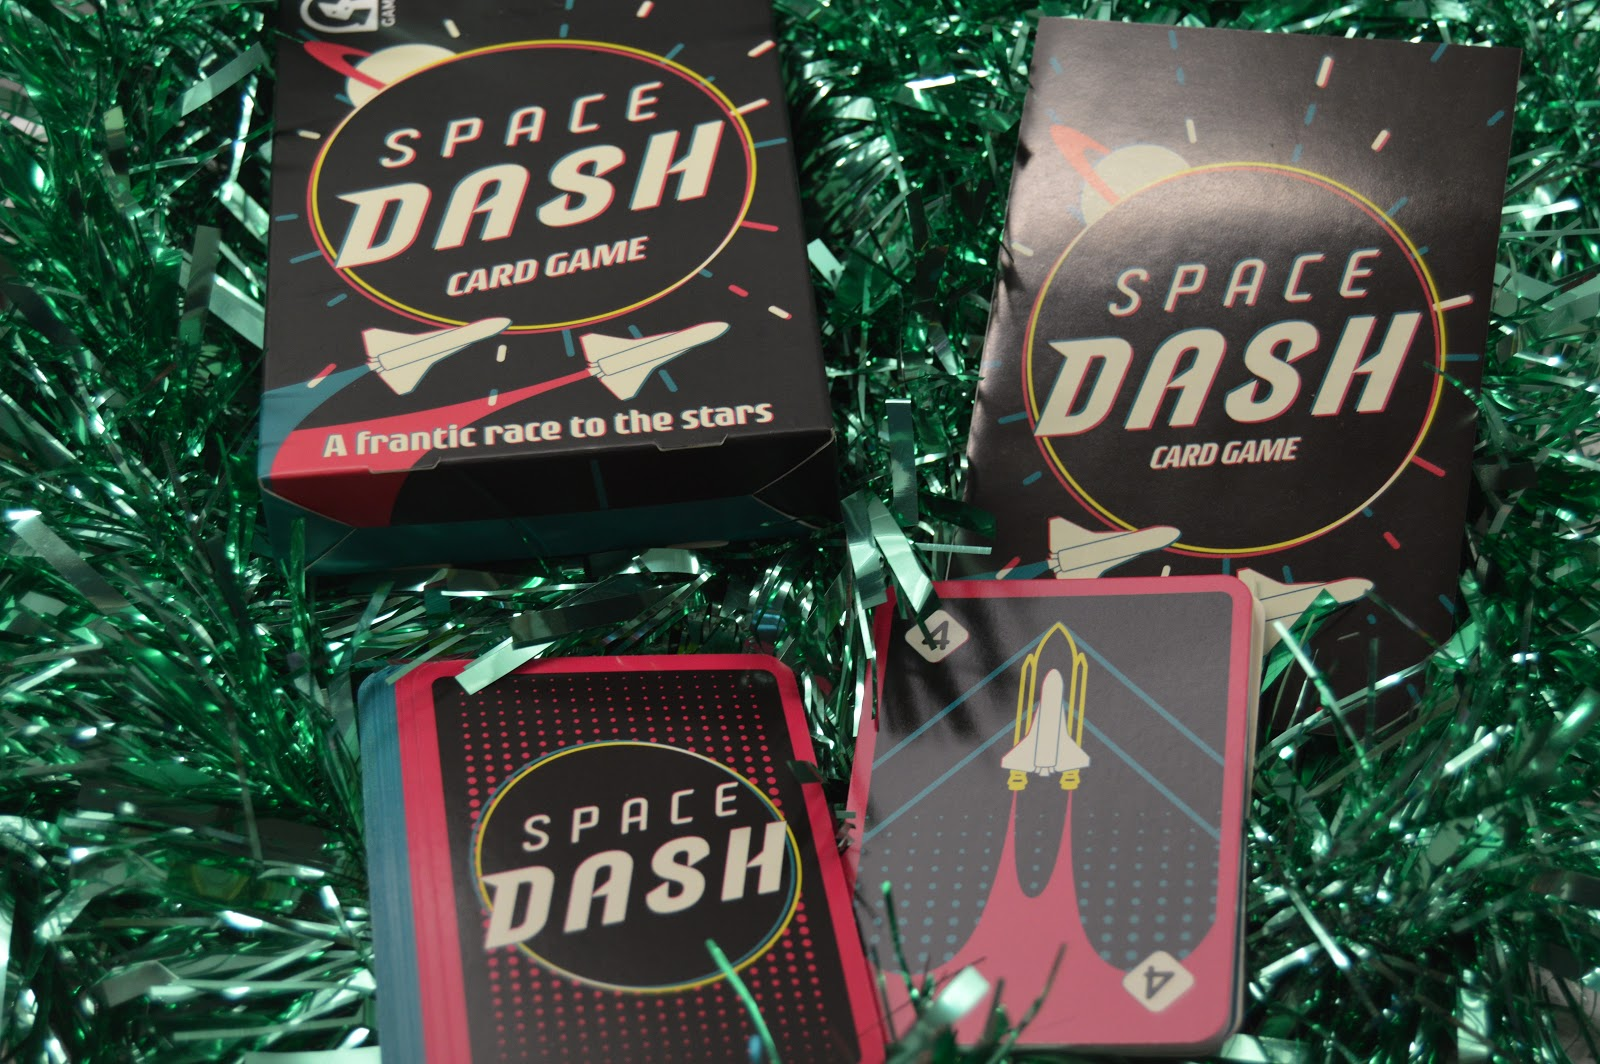 Space dash game